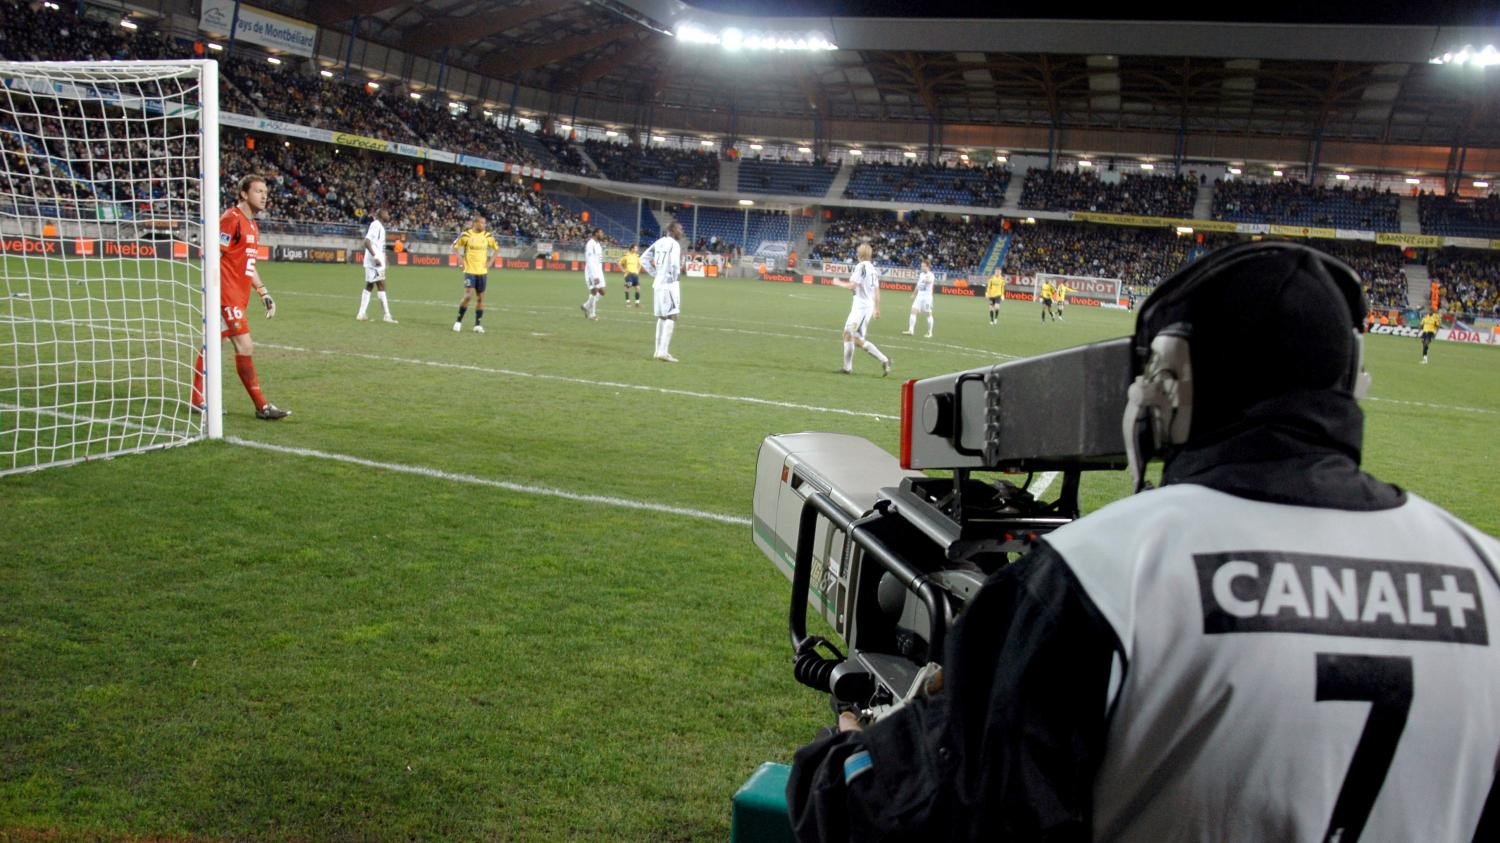 Foot comment la perte des droits de diffusion de la - Retransmission foot coupe de la ligue ...